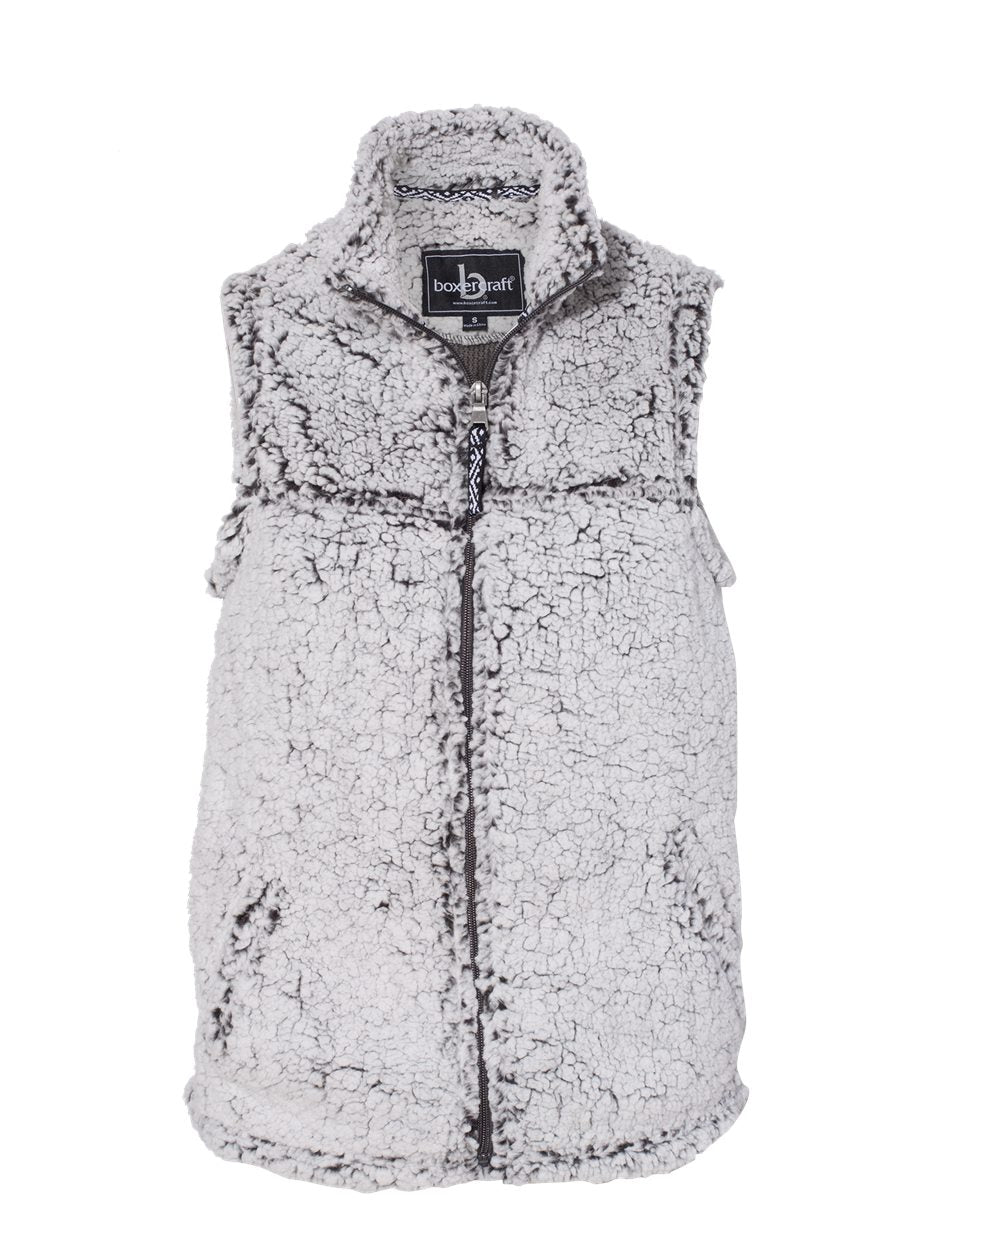 Women's Sherpa Full-Zip Vest - Q11